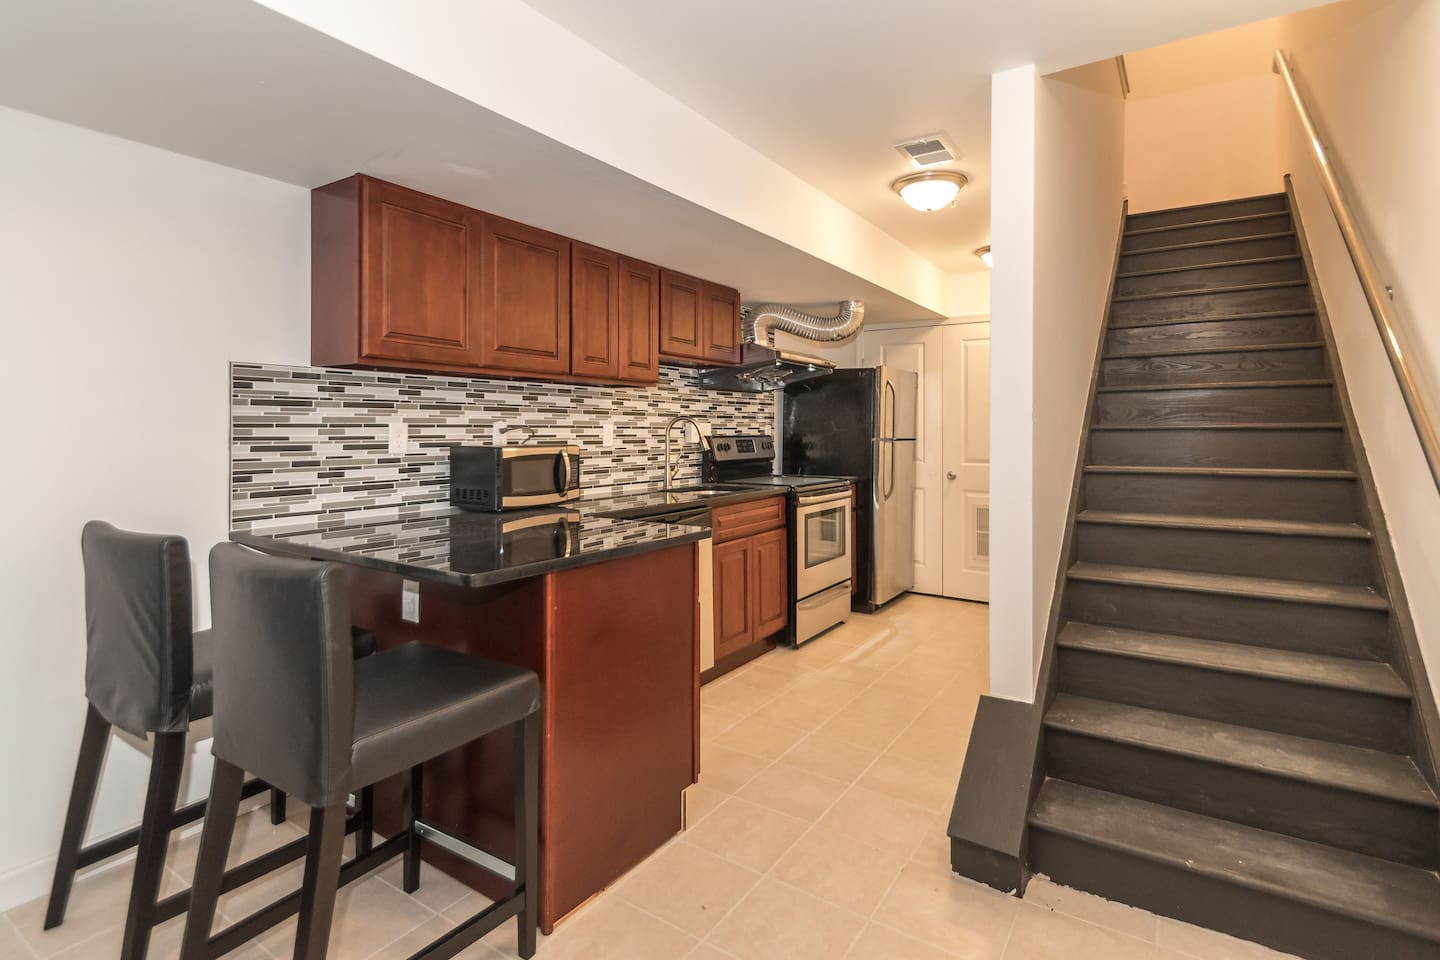 Brand new apartment resides in the heart of Philly downtown by Convention Center